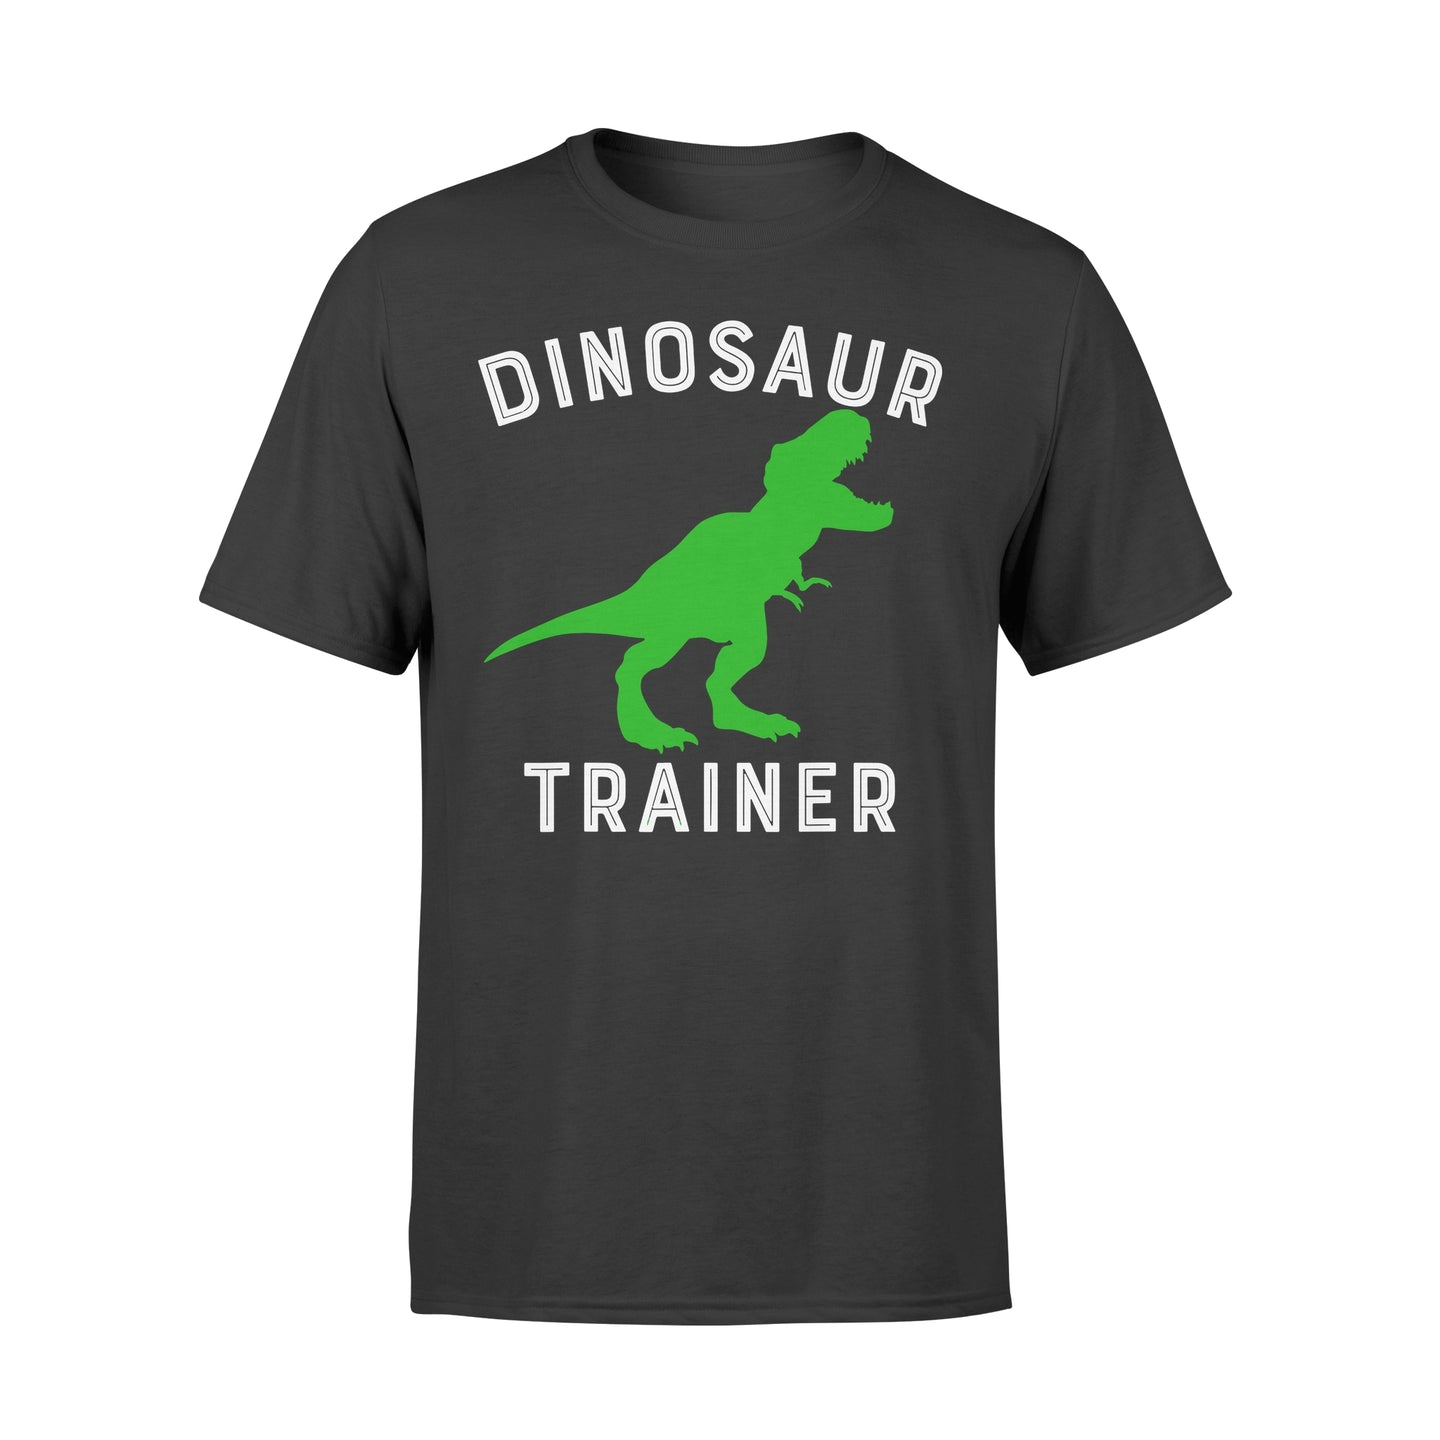 Dinosaur Trainer T-Rex - Standard T-shirt Apparel S / Black